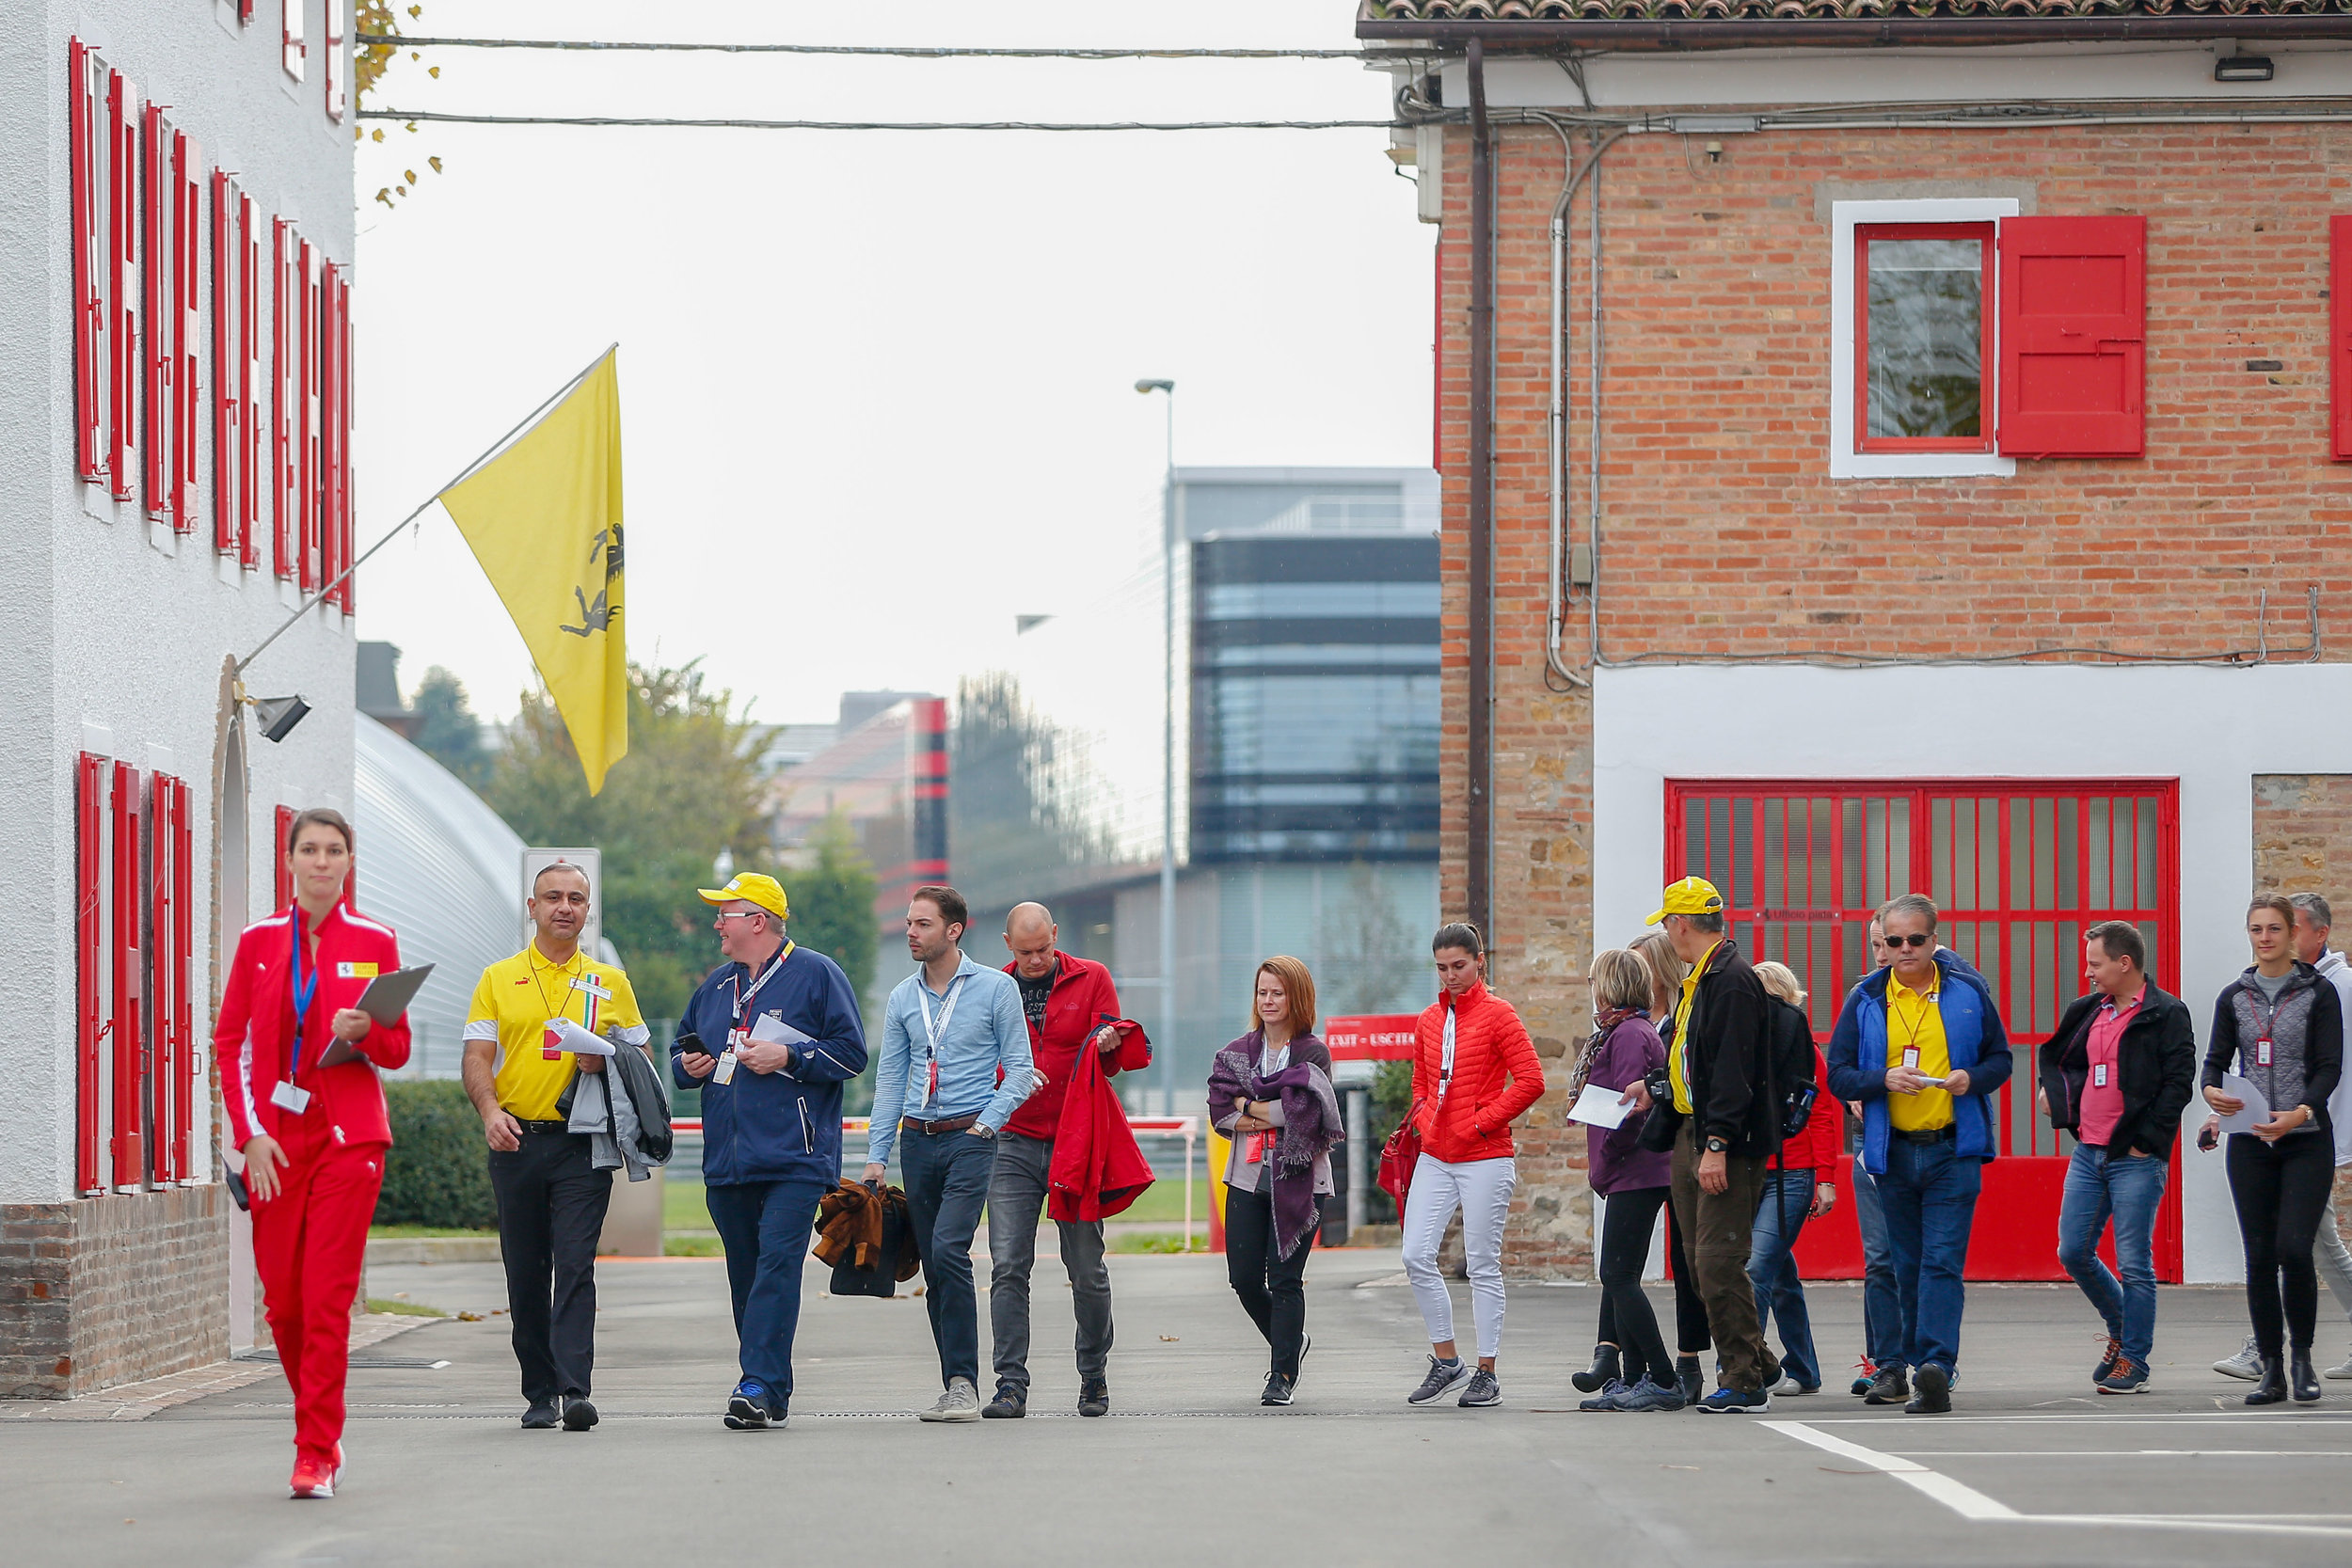 Our guests arriving onsite at Fiorano.